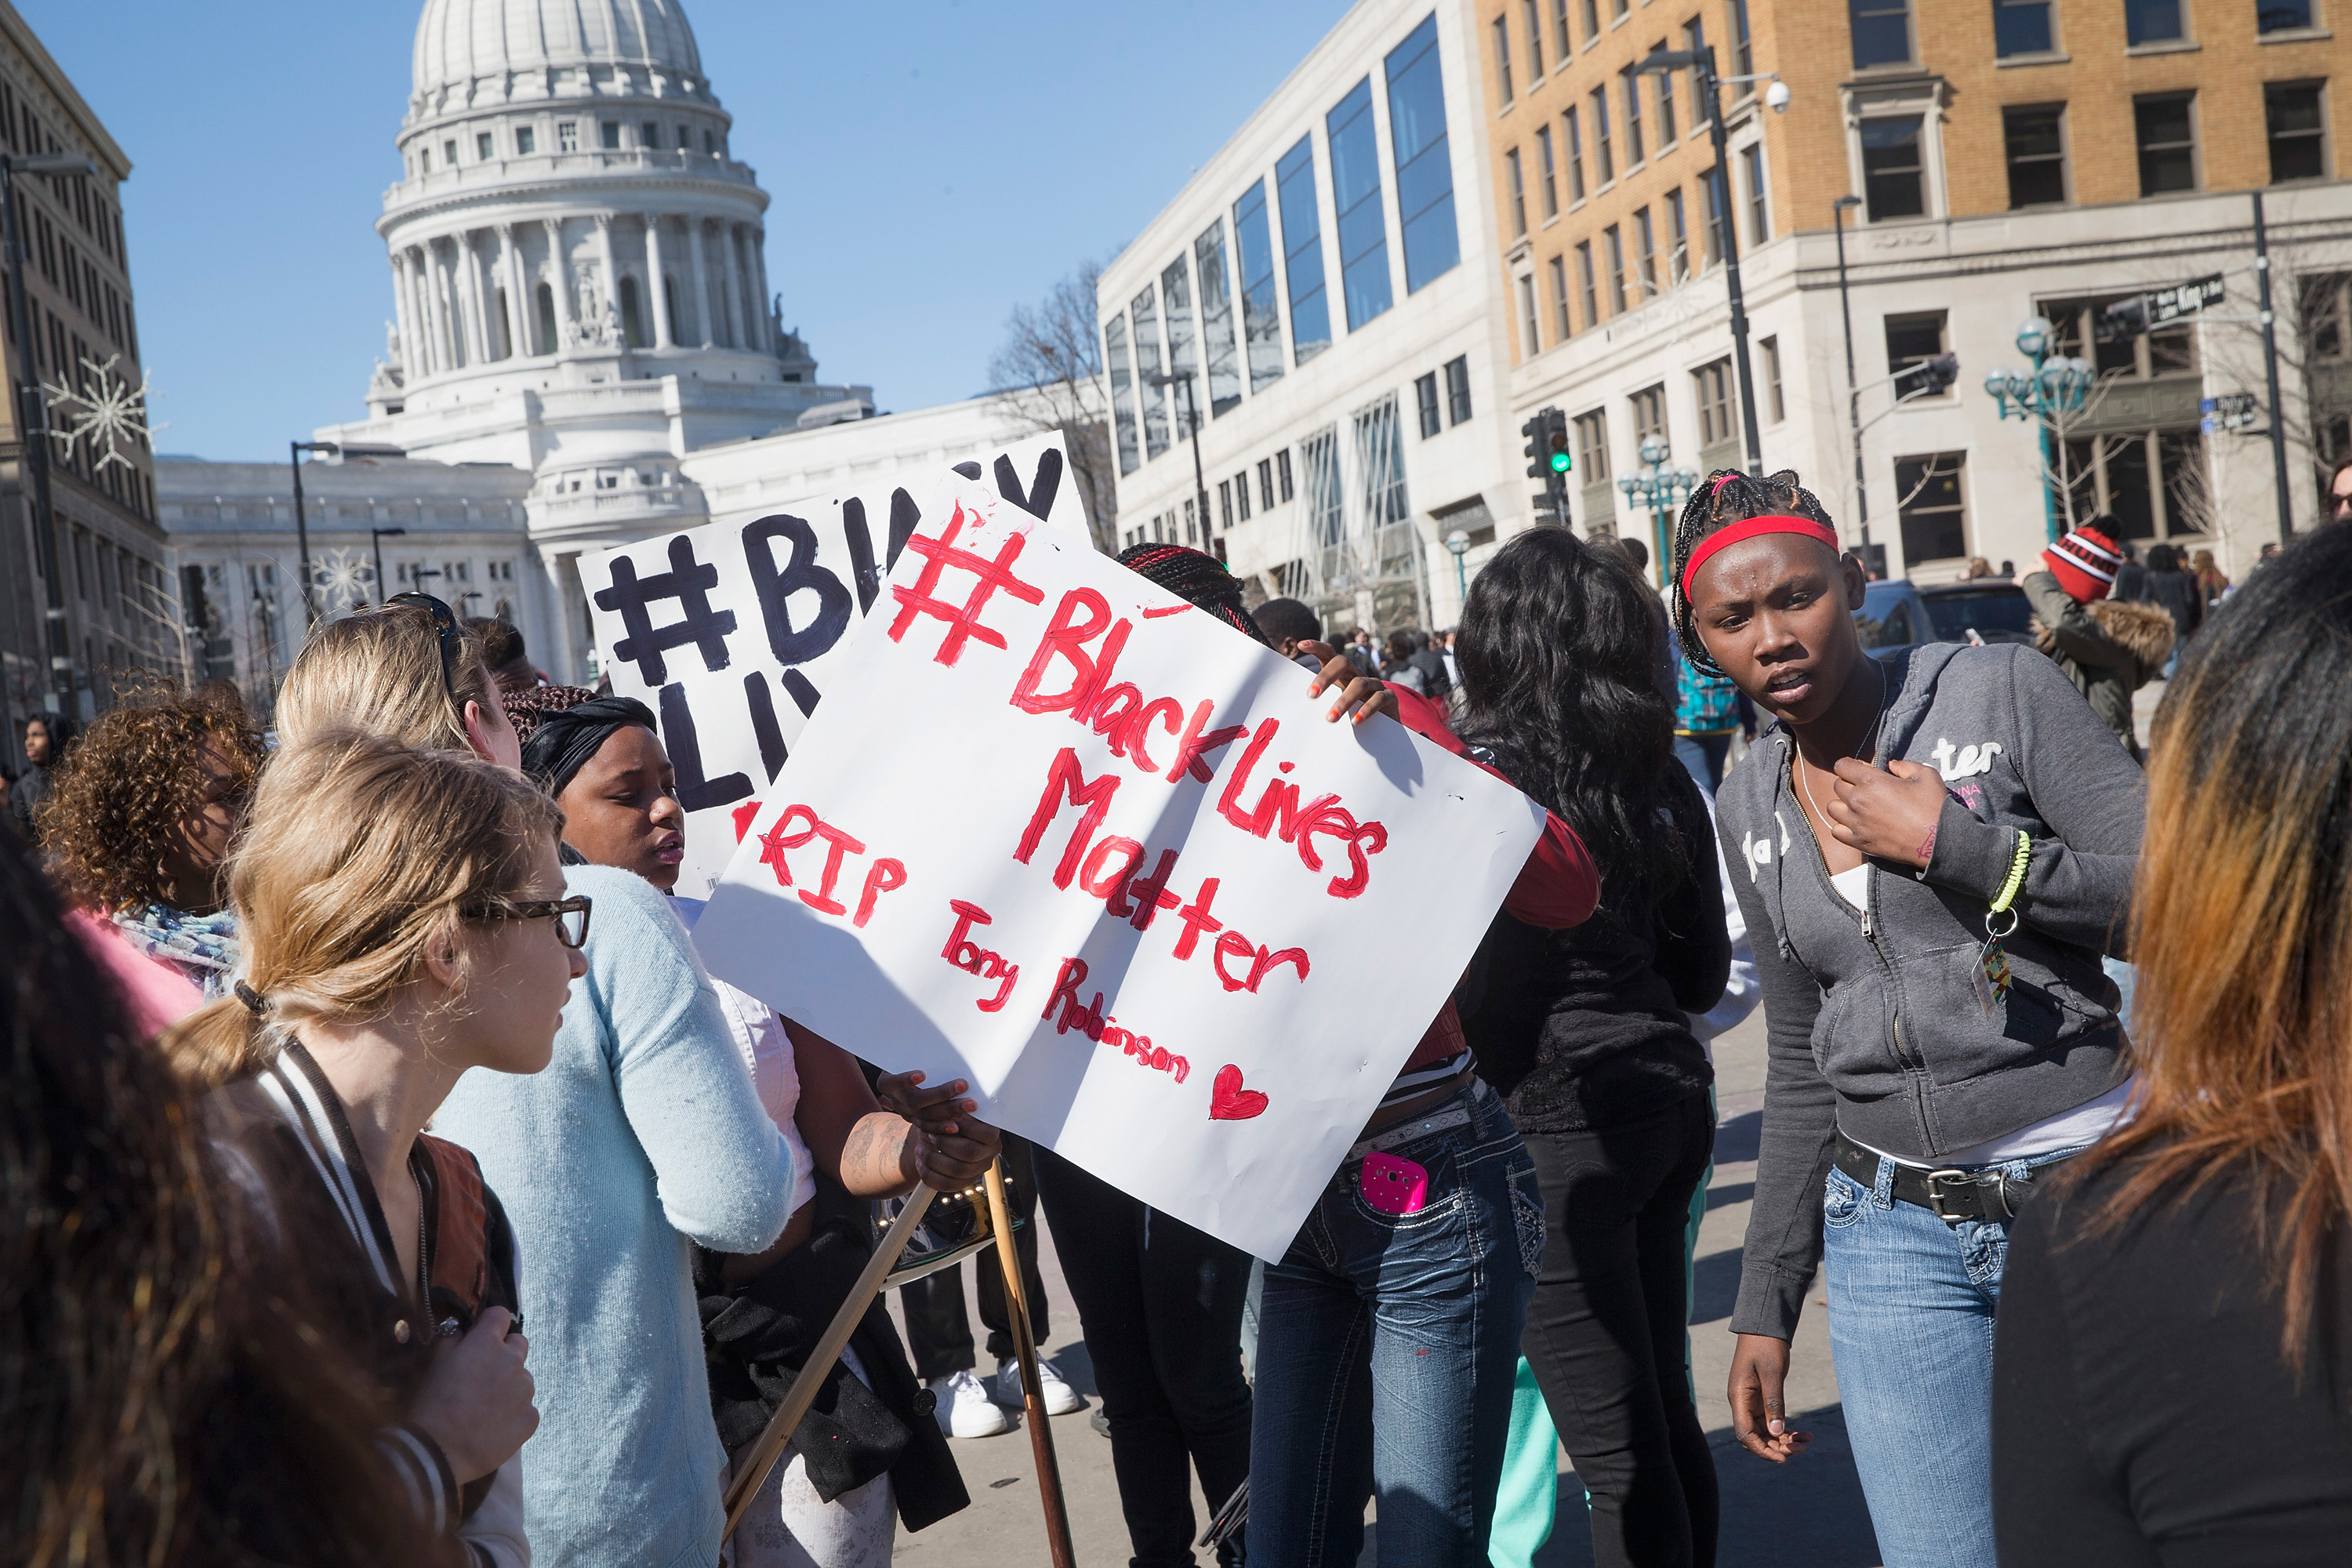 Protesters rally in Madison, Wisconsin after the death of Tony Robinson. (Getty)